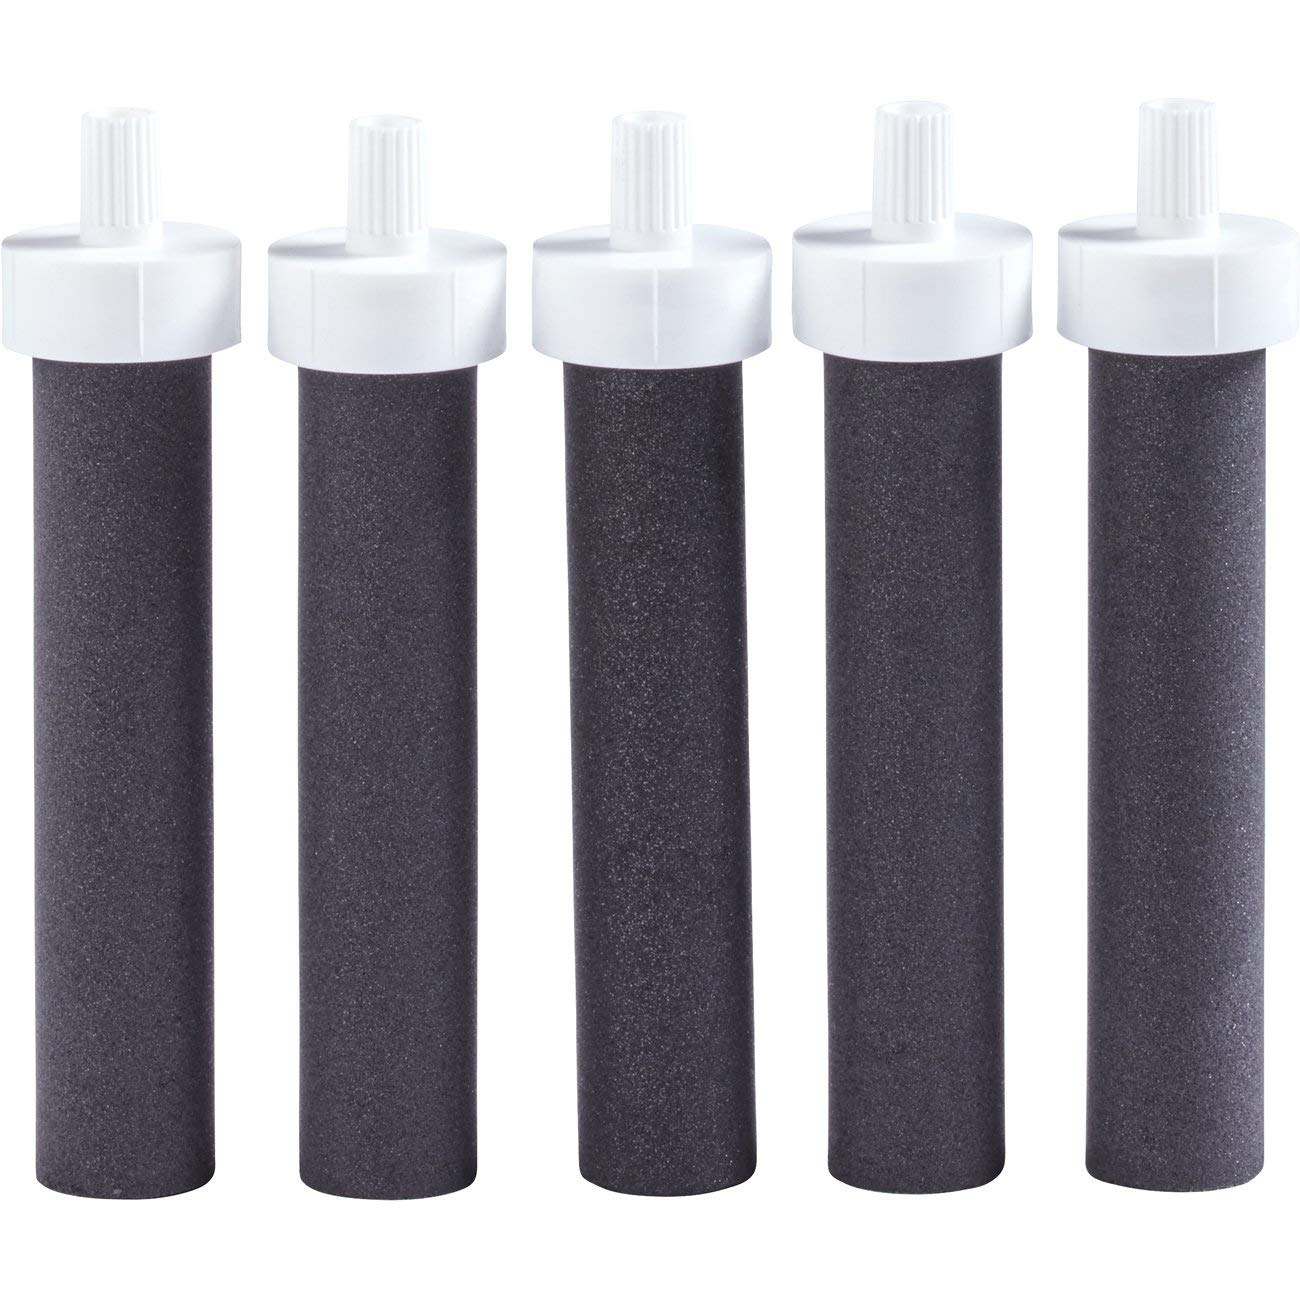 Brita Water Bottle Filter Replacements - BPA Free - 5 Count, Black